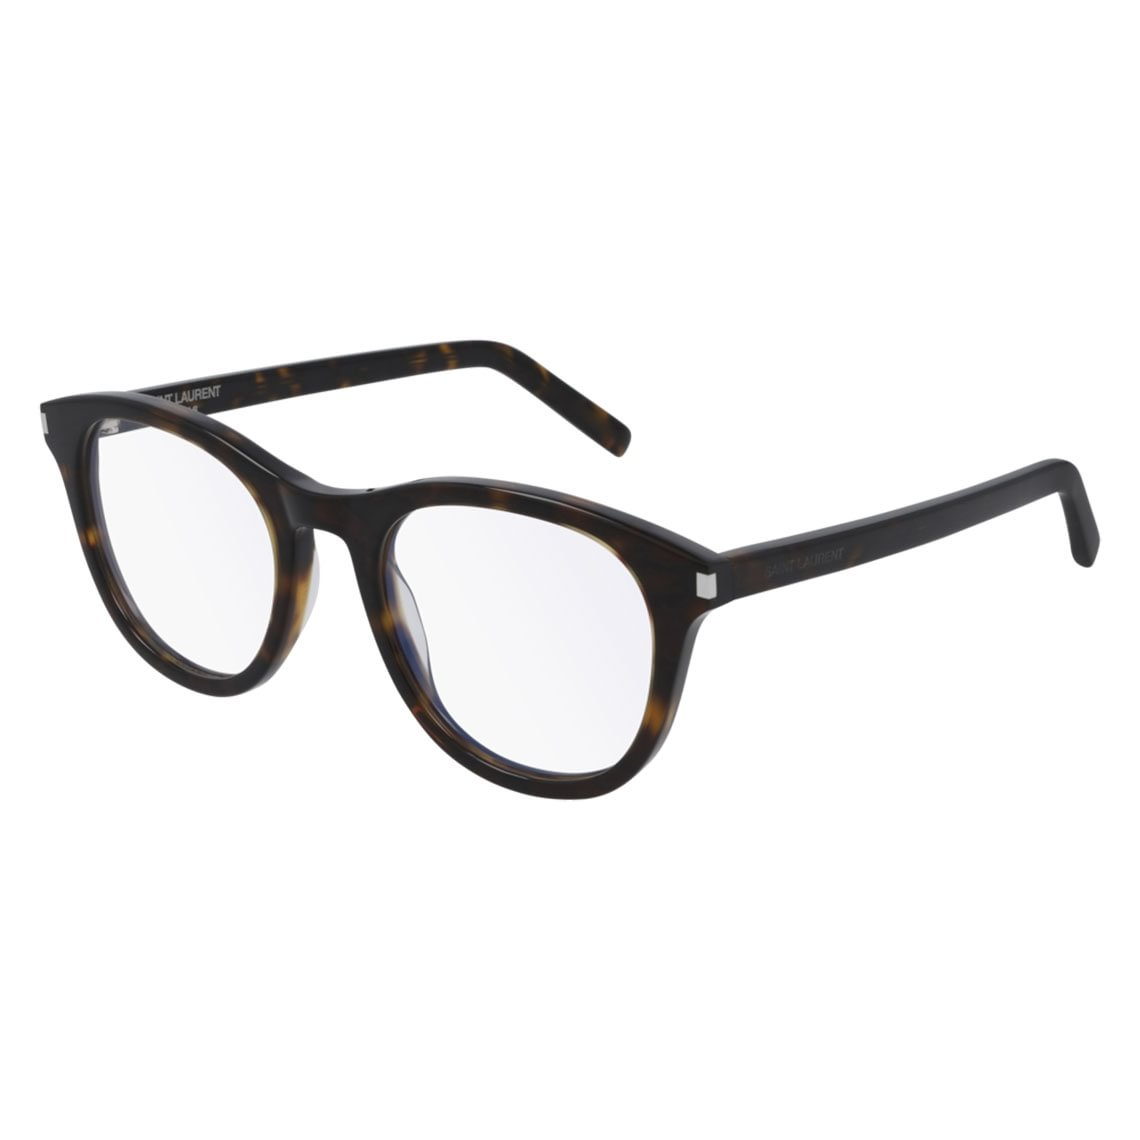 Saint Laurent SL 403 002 5121